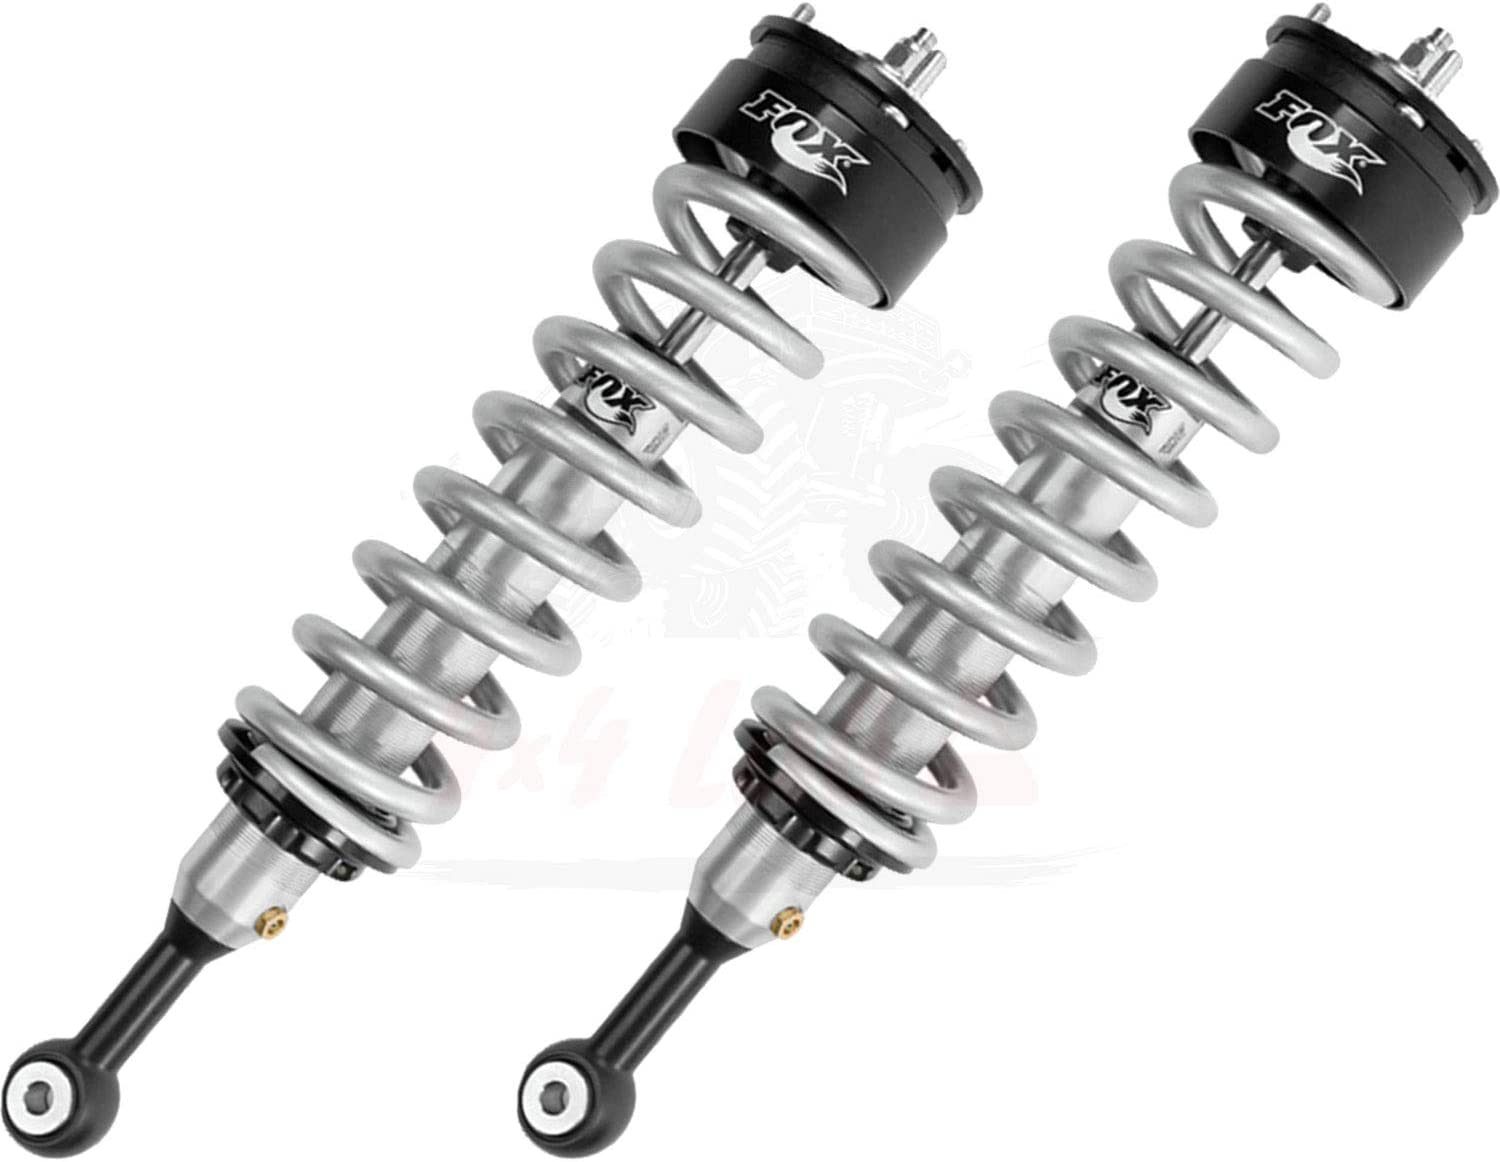 Kit of 2 Fox 2.0 Performance Series Coil-Over IFP 0-2 inch Lift Front Shocks for Dodge Ram 1500 2014-2017 4WD